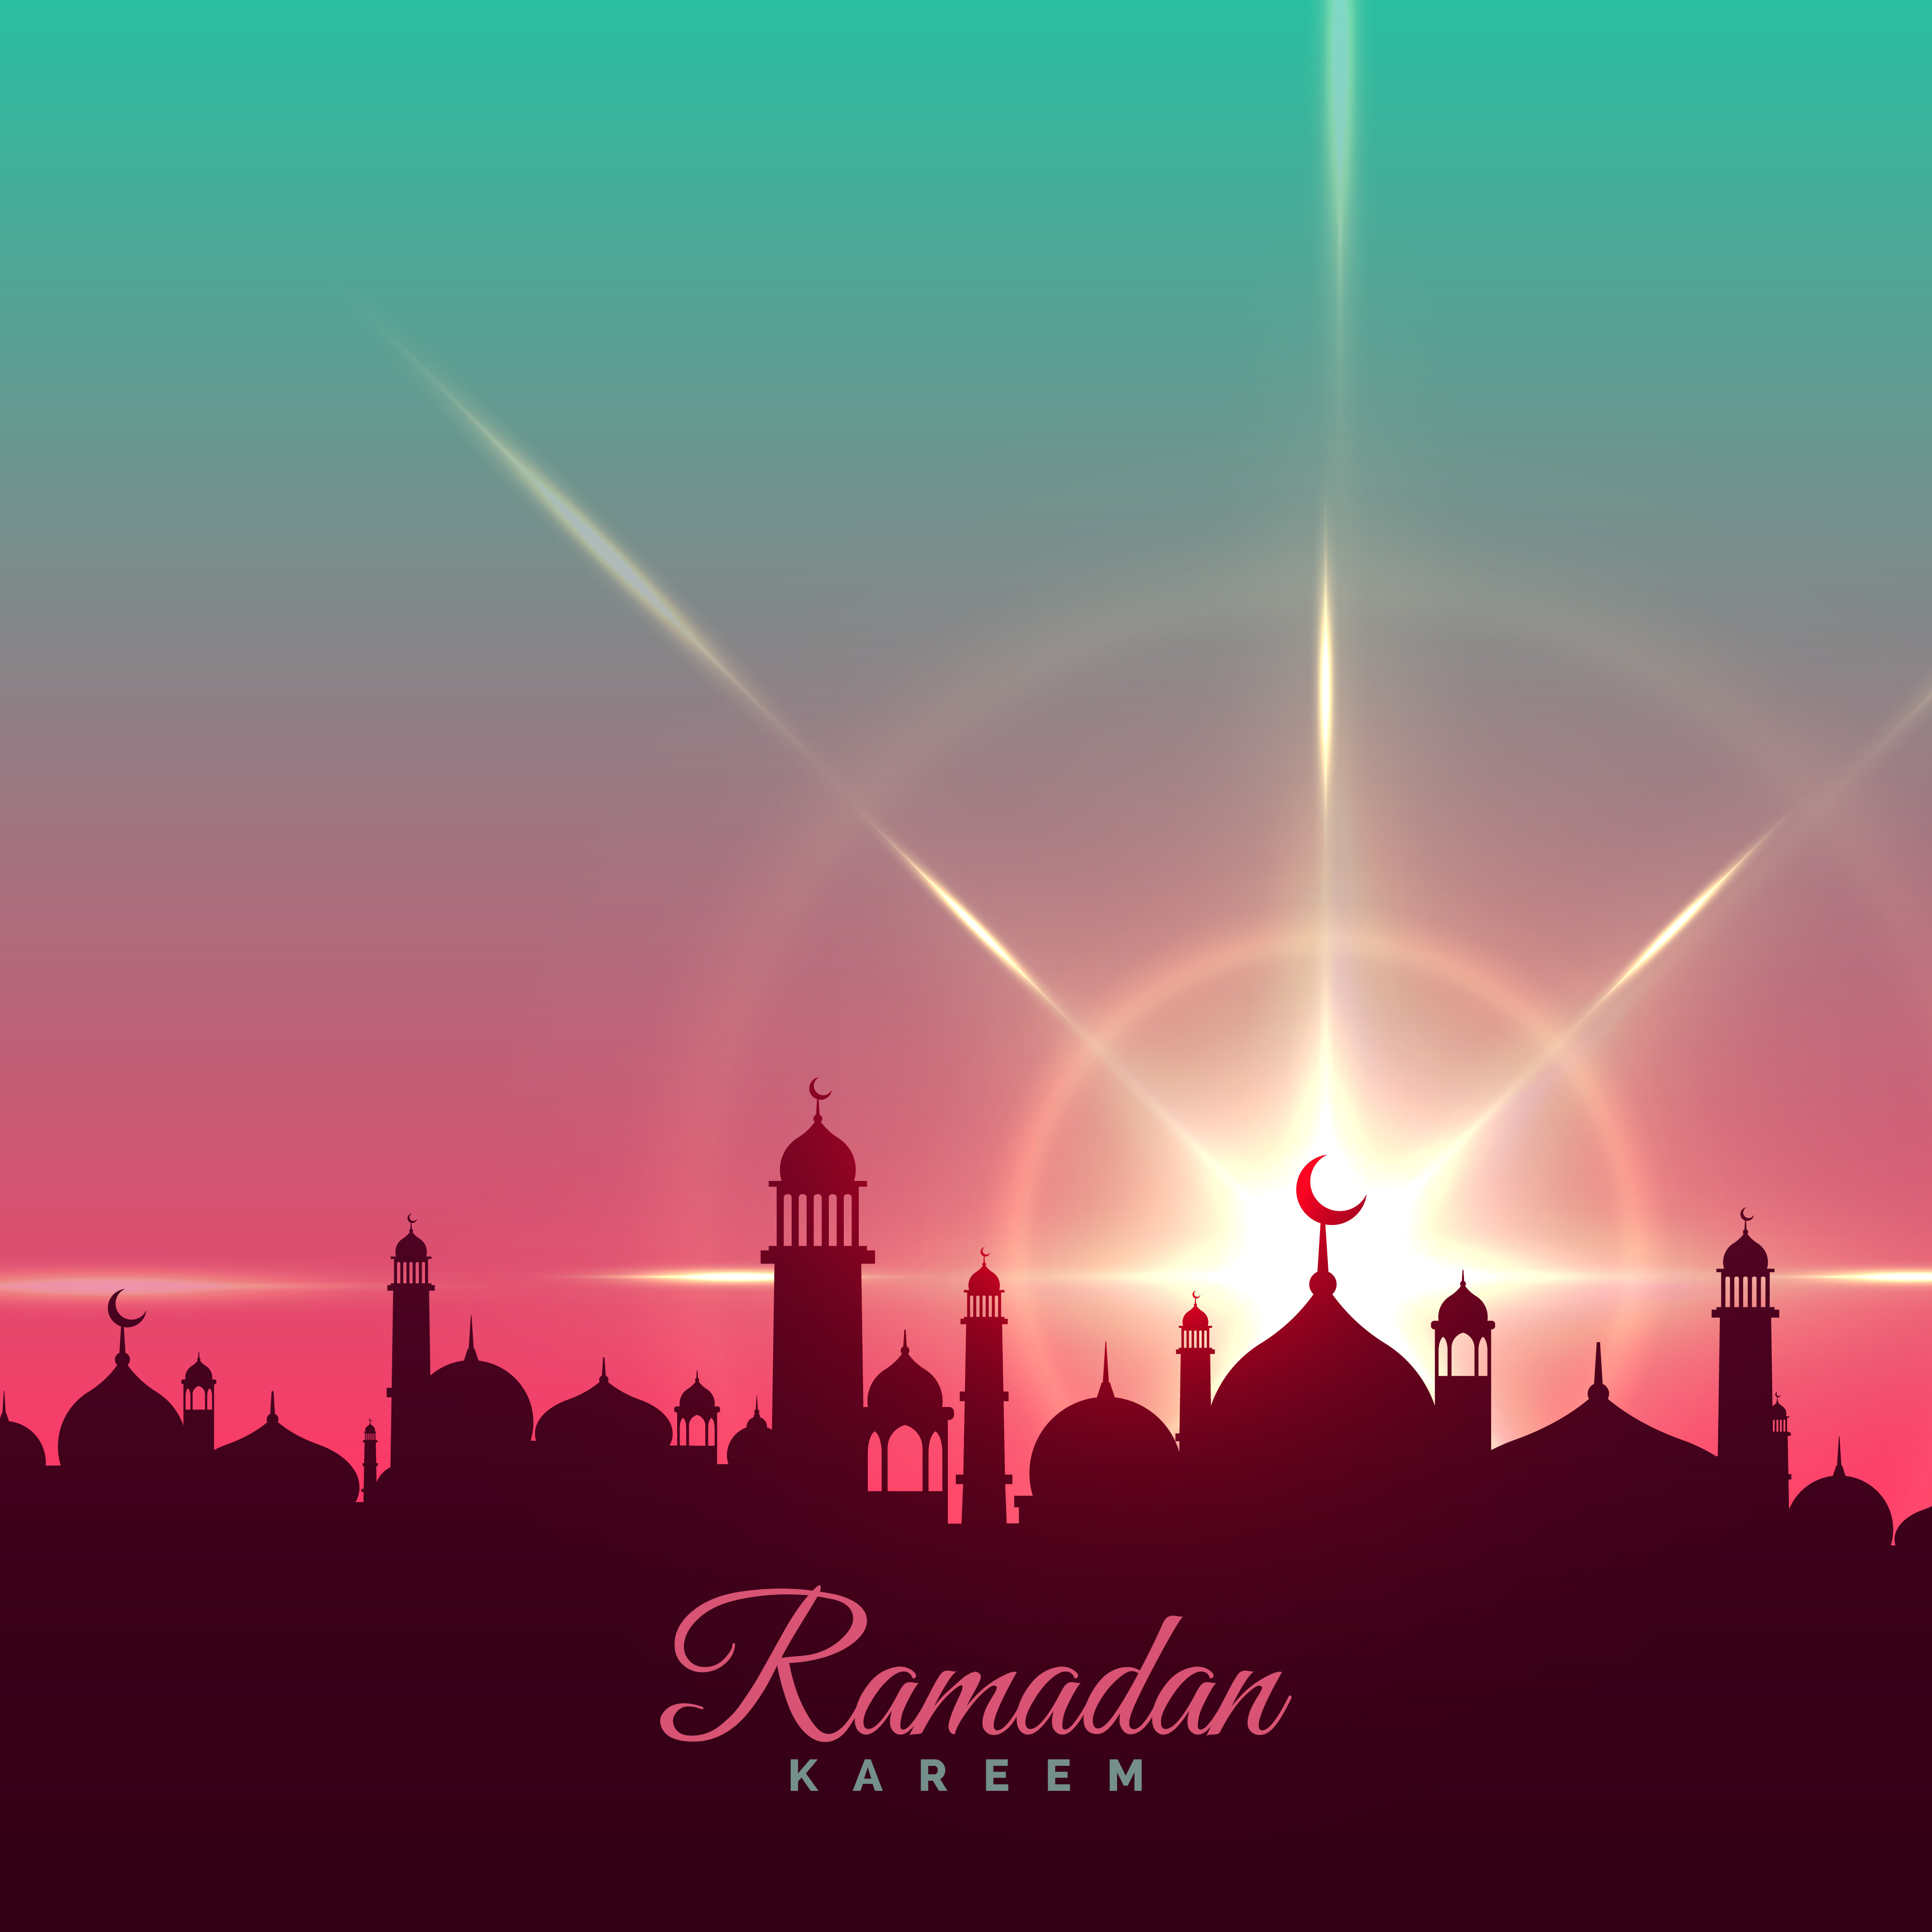 Ramadan Kareem Greeting Background With Mosque Silhouette